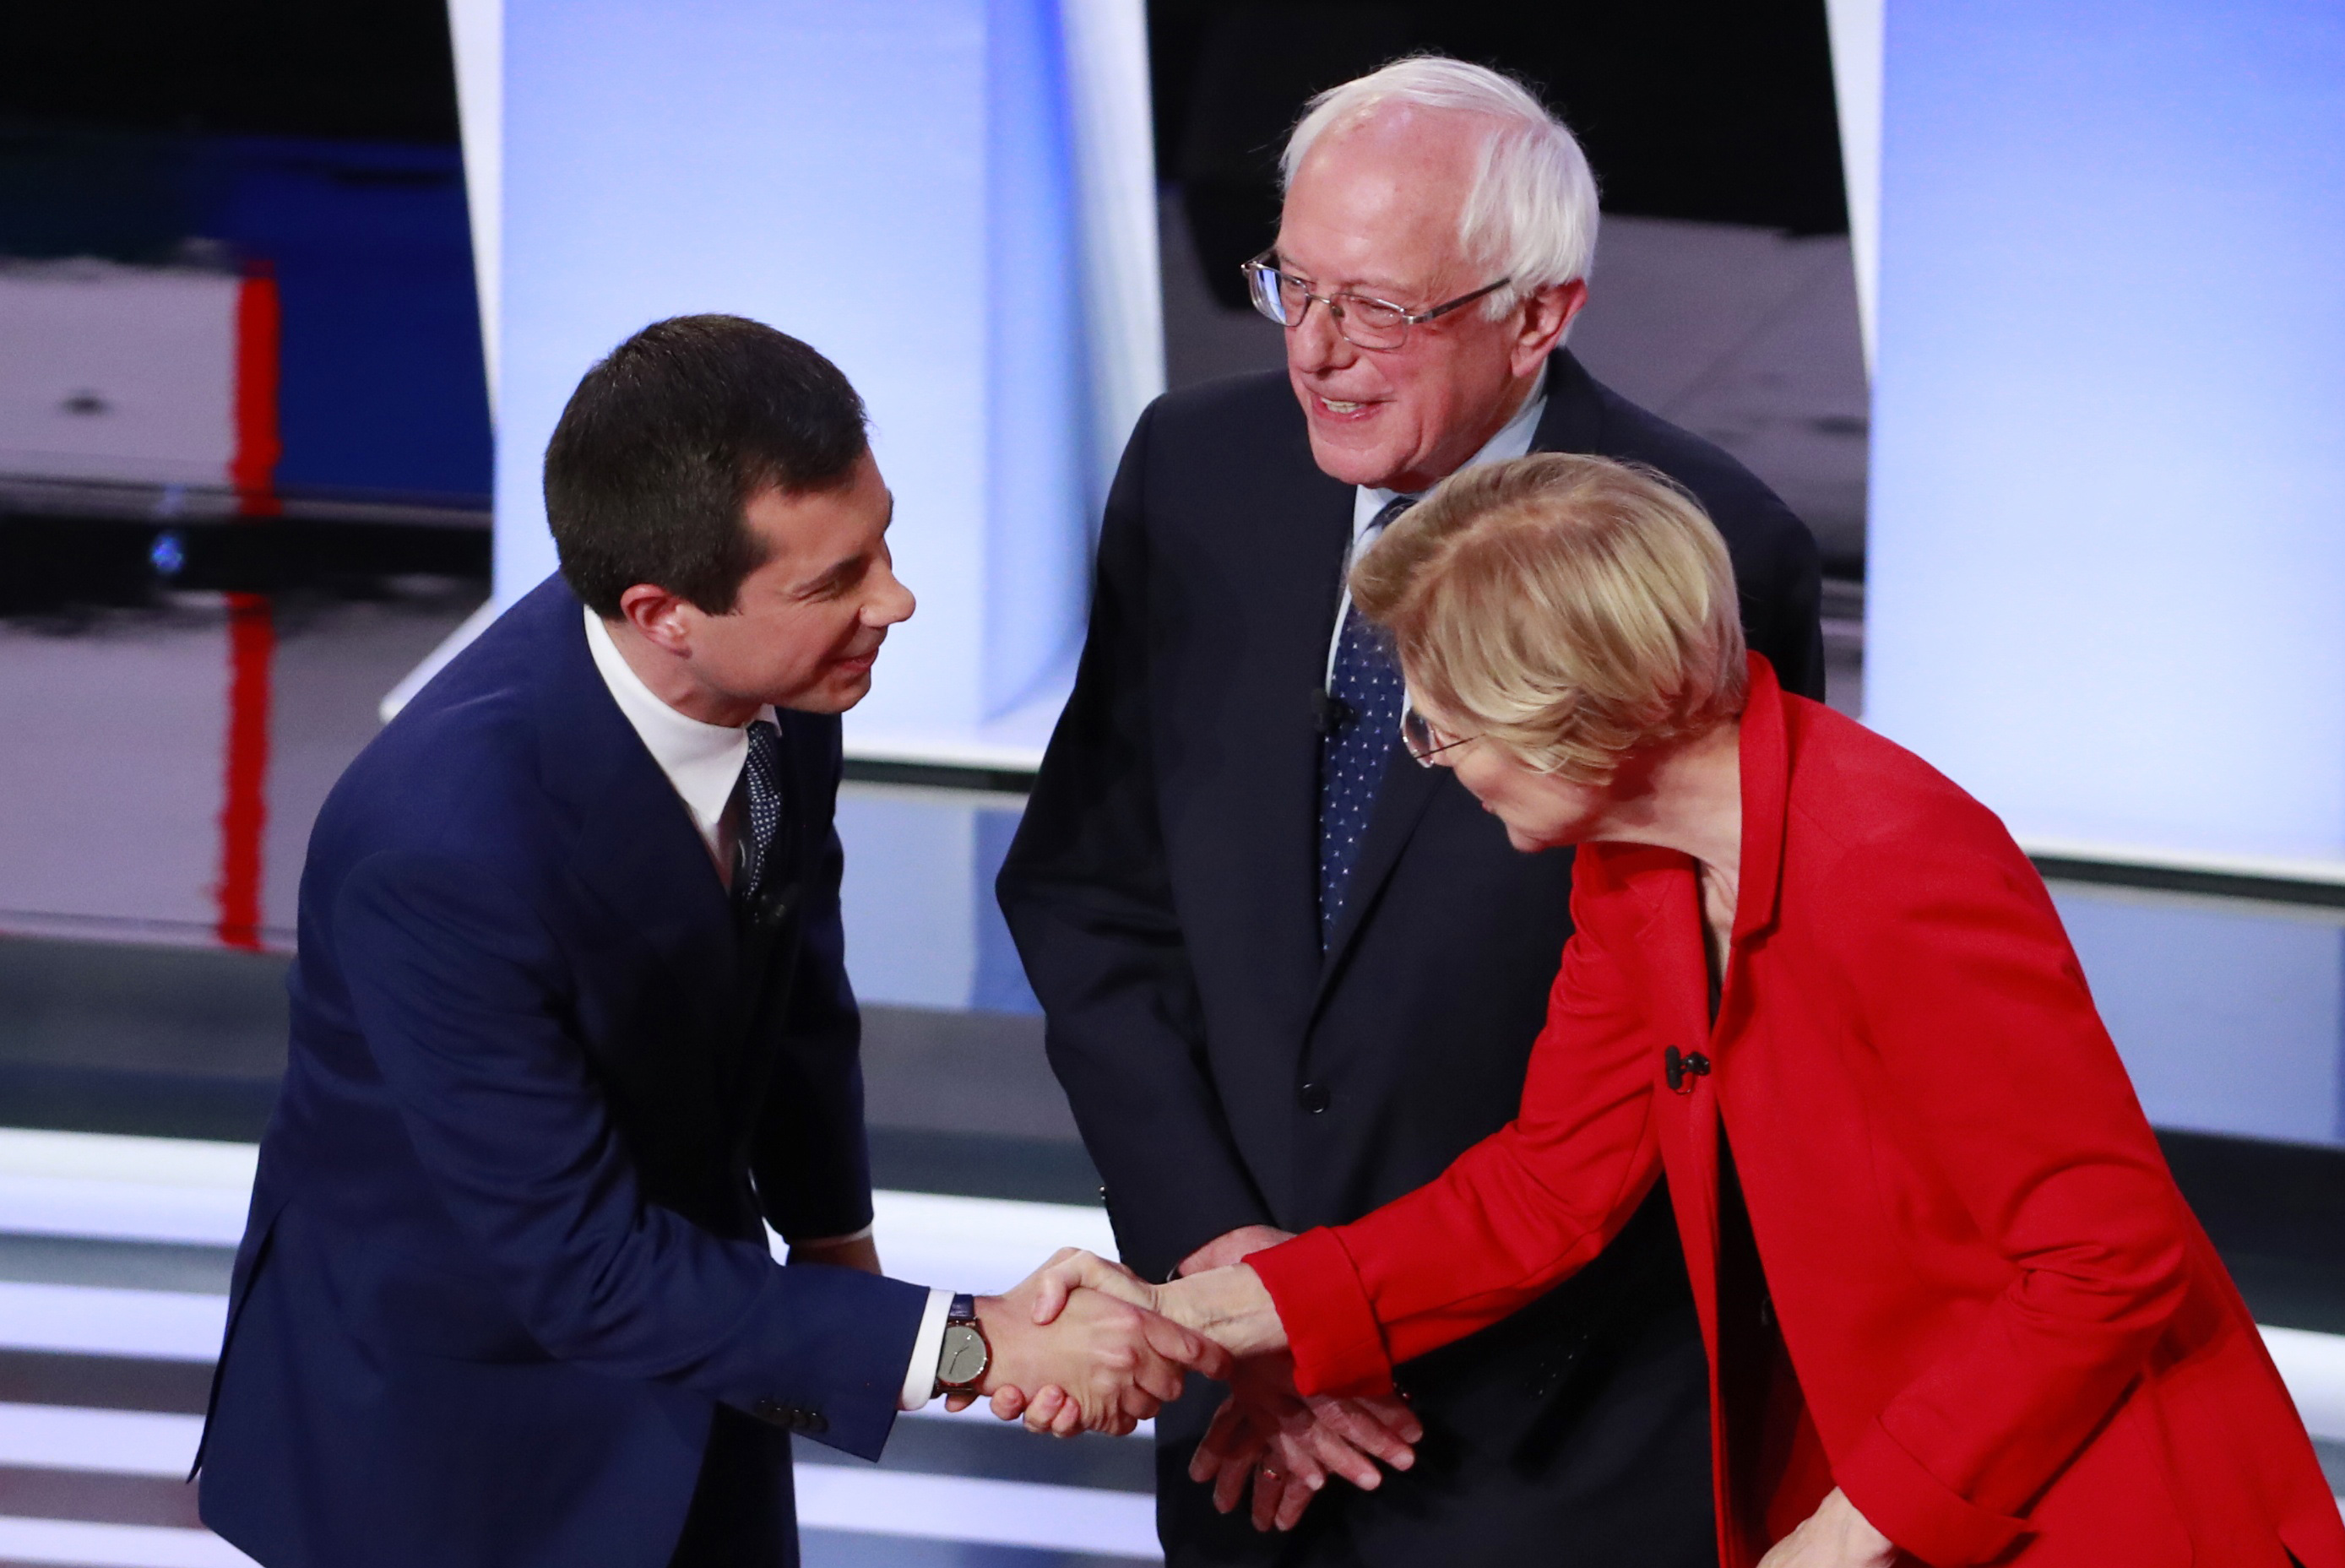 Candidates shake hands before the start of the first night of the second 2020 Democratic U.S. presidential debate in Detroit, Michigan, U.S.